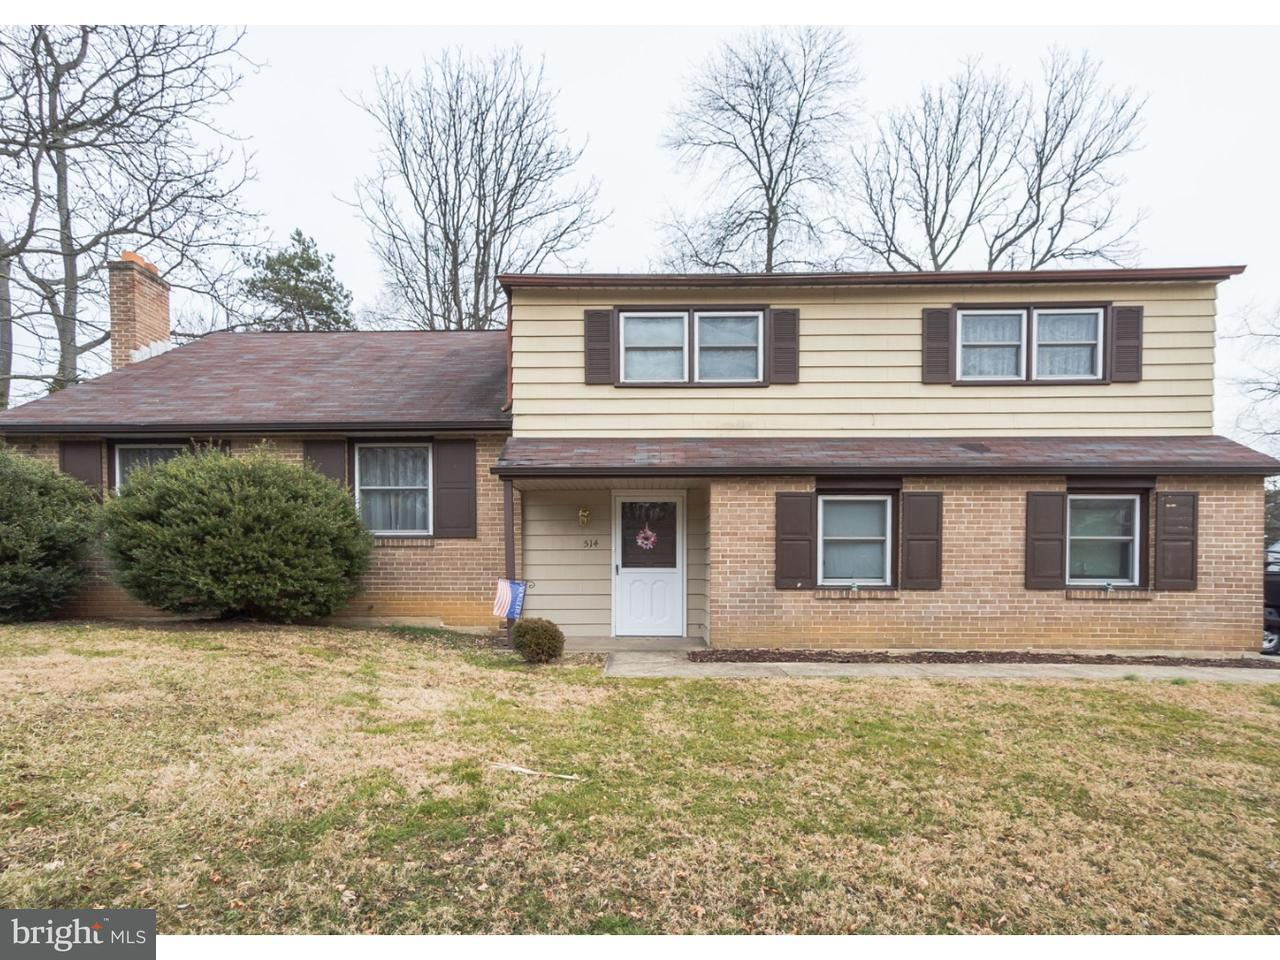 Single Family Home for Sale at 514 W BROOKHAVEN Road Wallingford, Pennsylvania 19086 United States